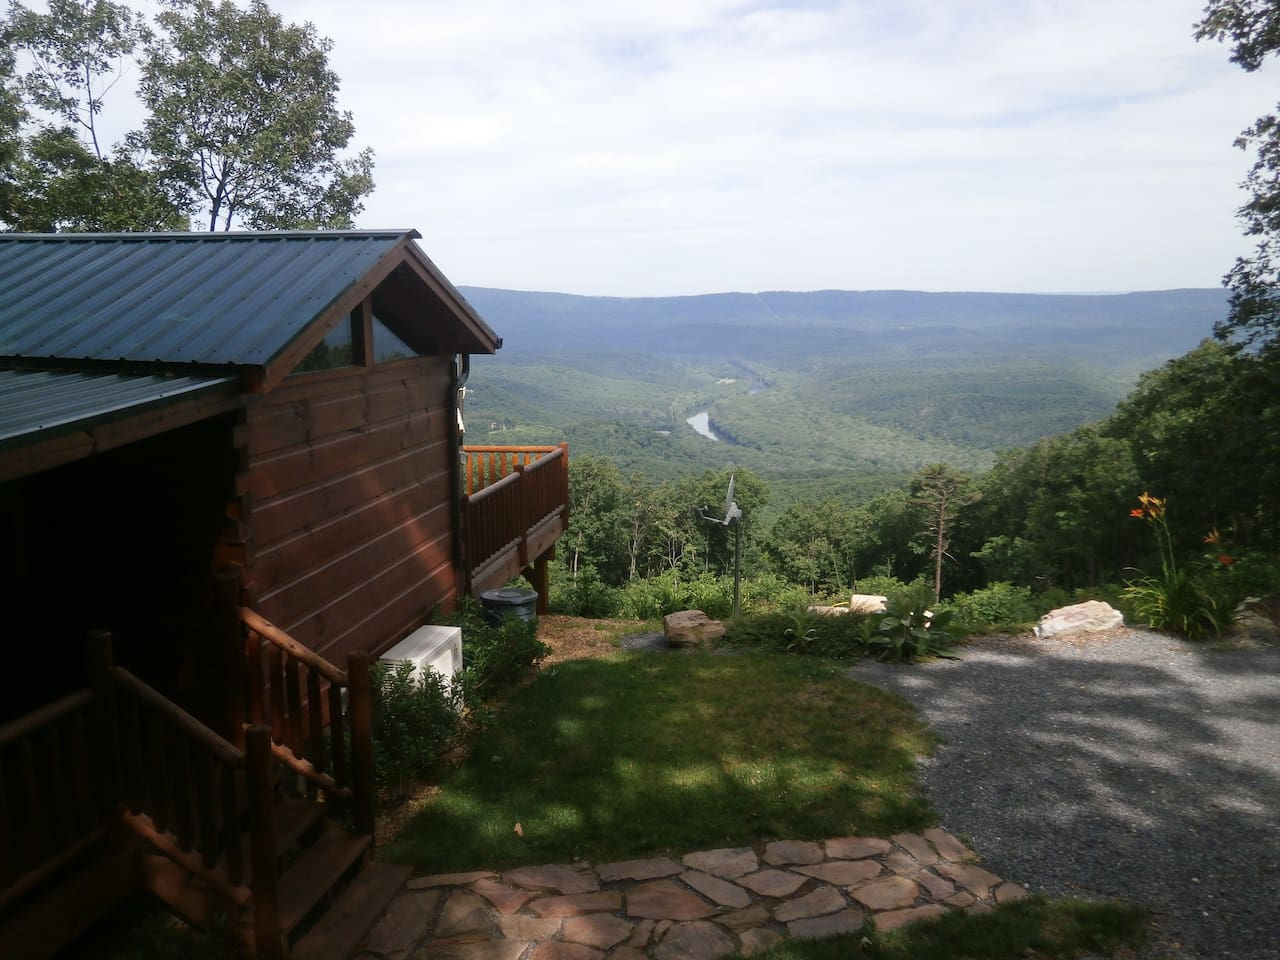 View of the Potomac River and Valley from the cabin.